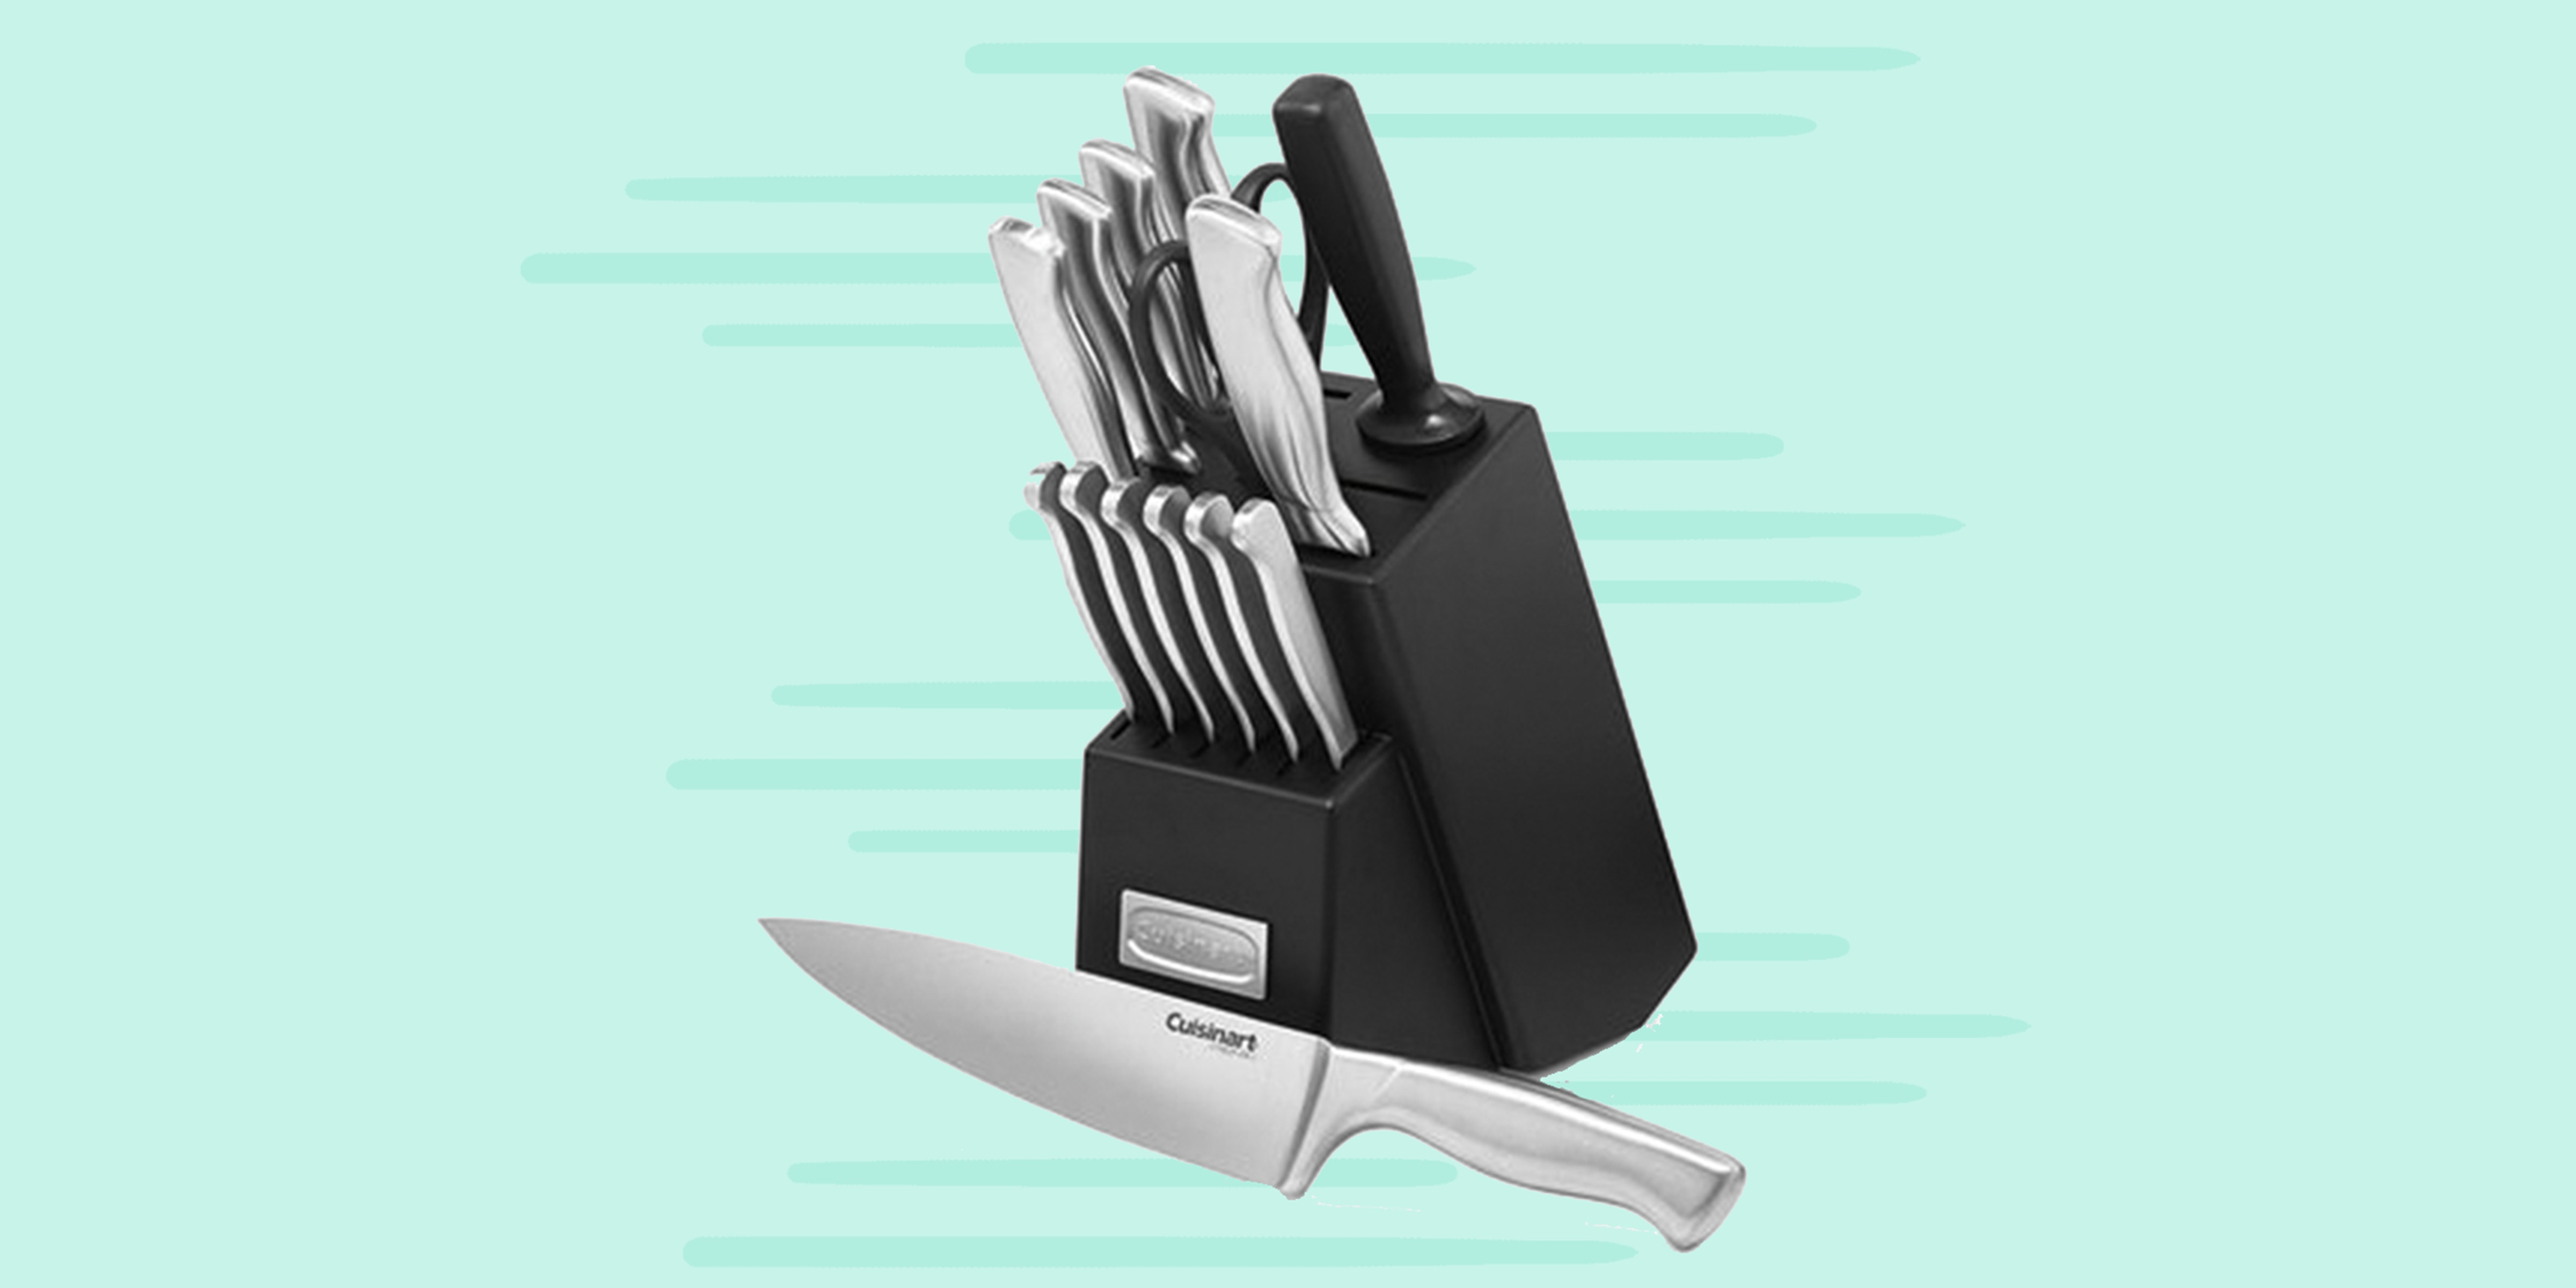 The 5 Best Knife Sets Under $100